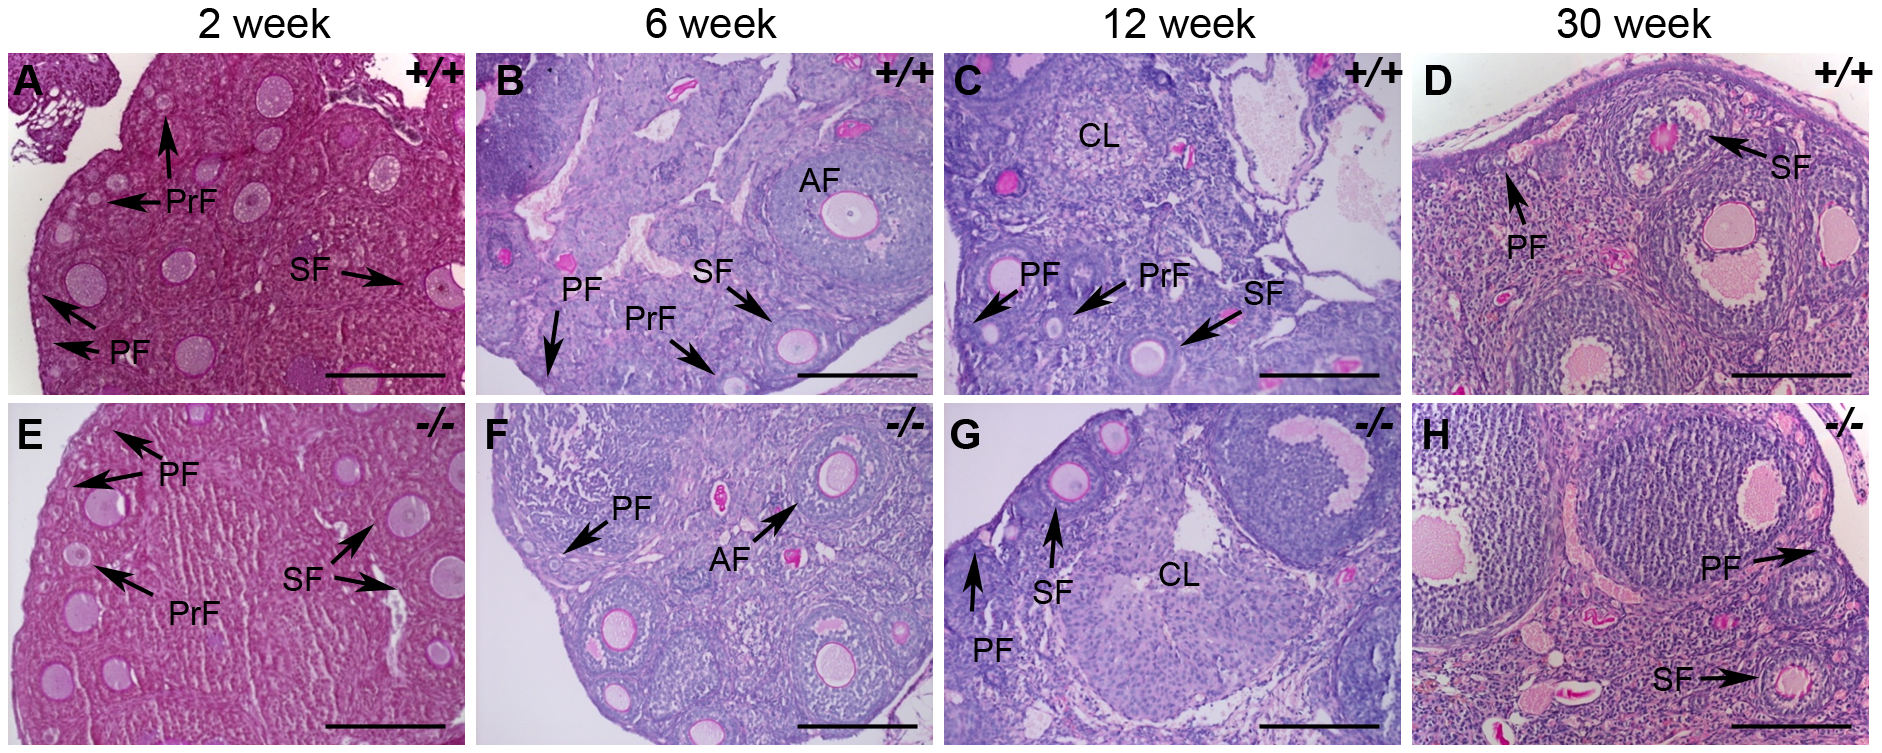 Histological analysis of wild-type and <i>Hormad1</i><sup>–/–</sup> ovaries.